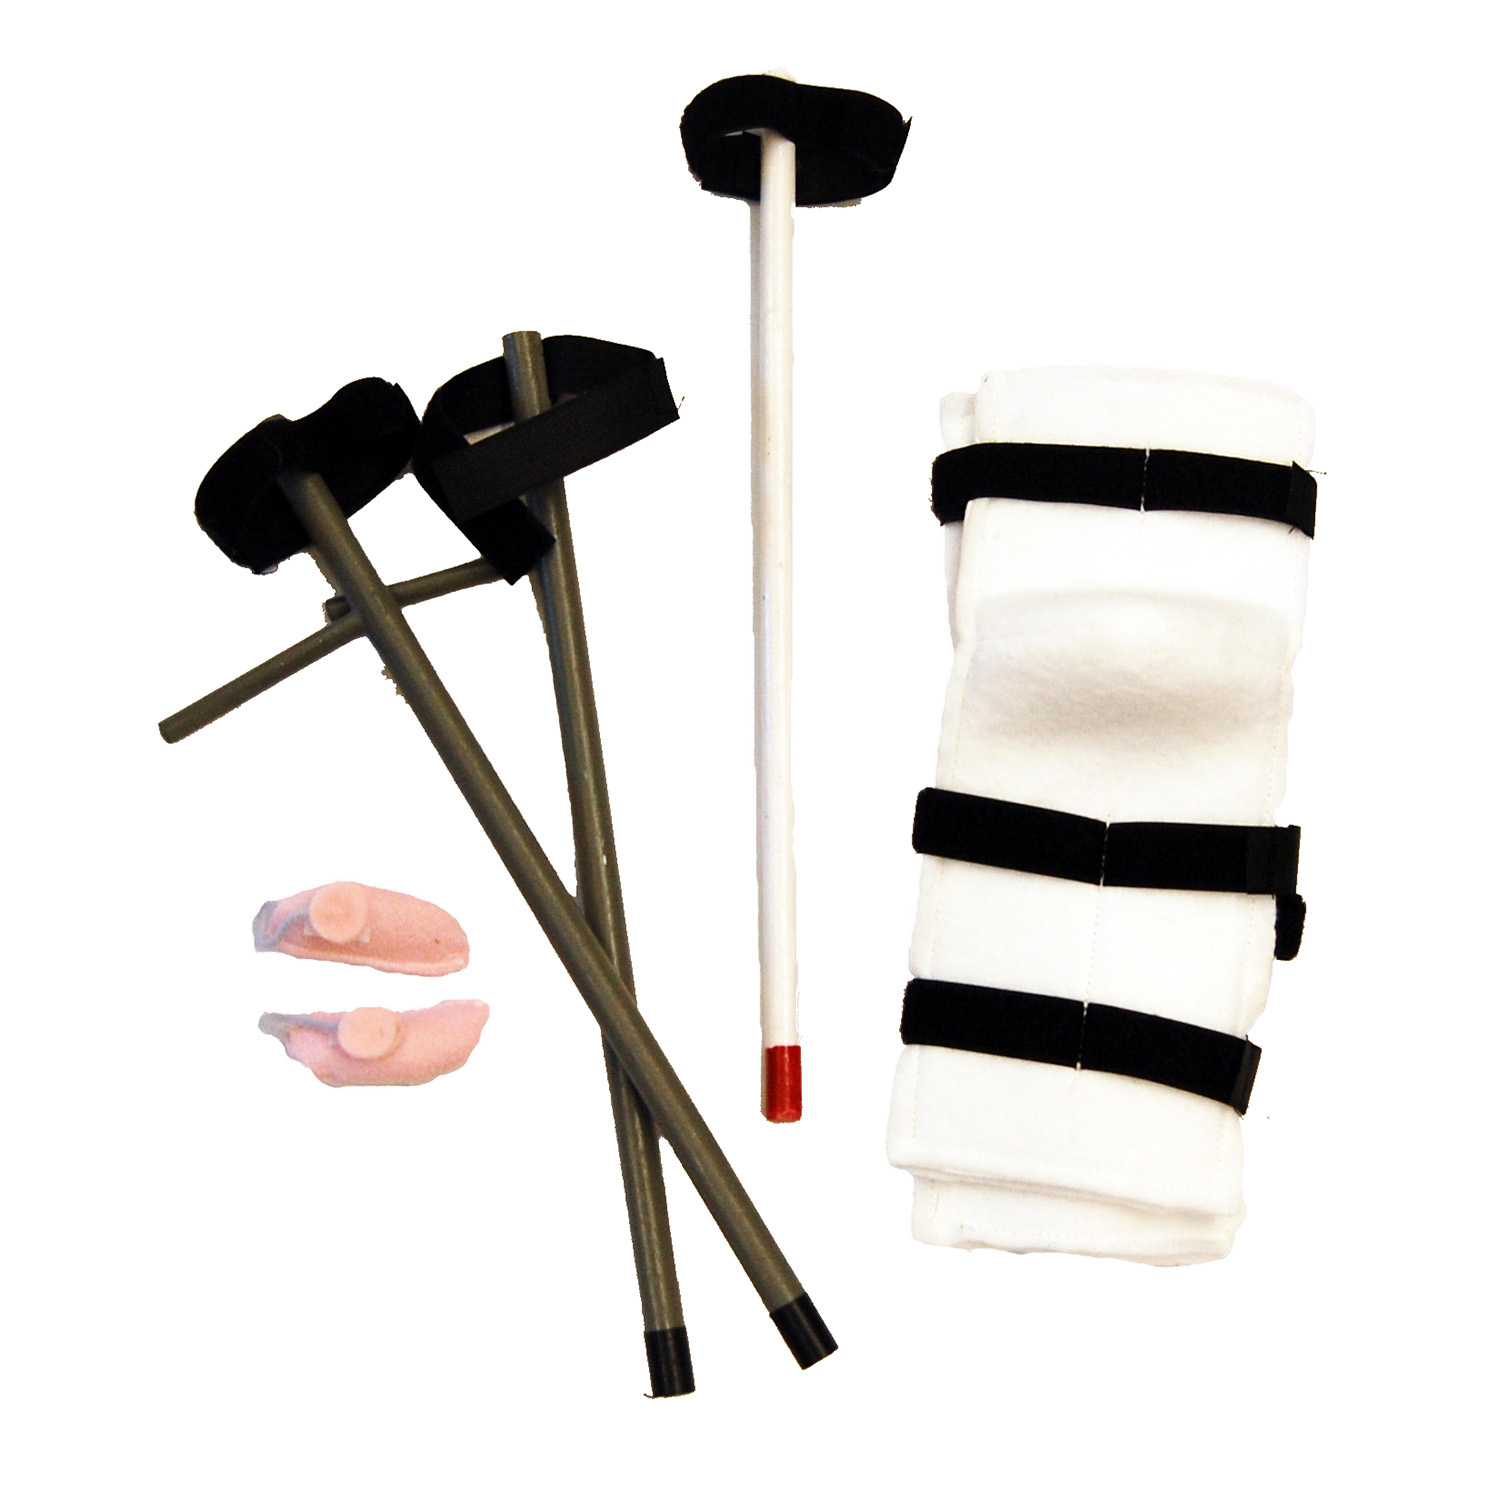 Special needs accessories, casts, crutches, hearing aids, white cane